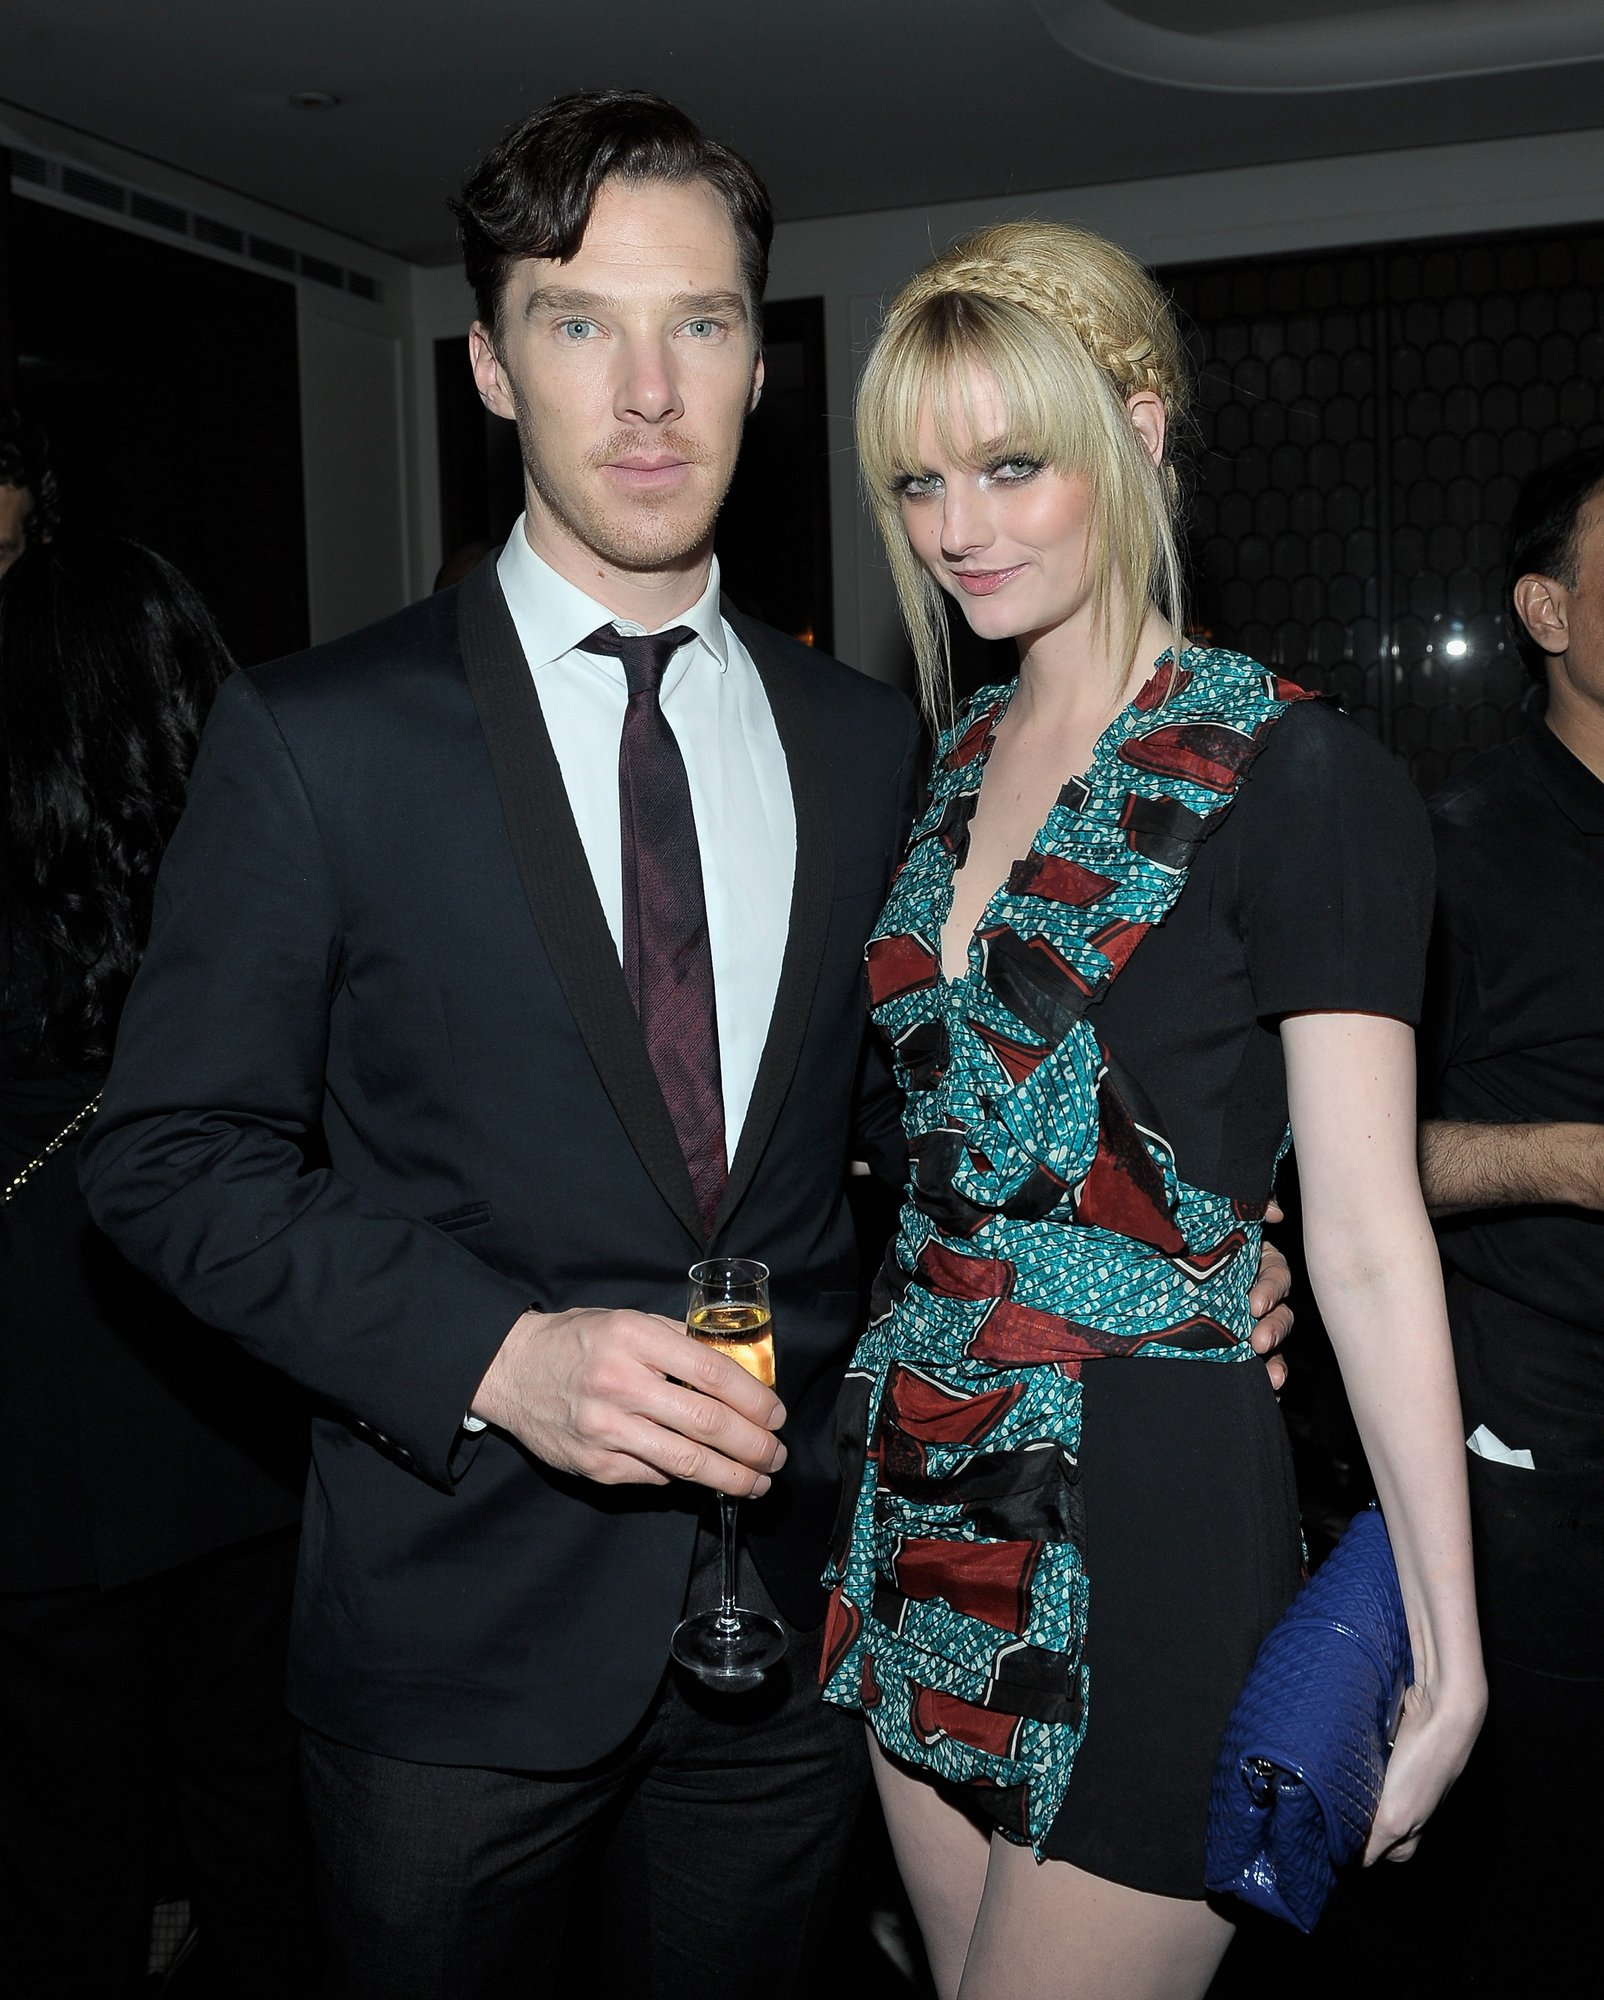 Benedict Cumberbatch photo #342724